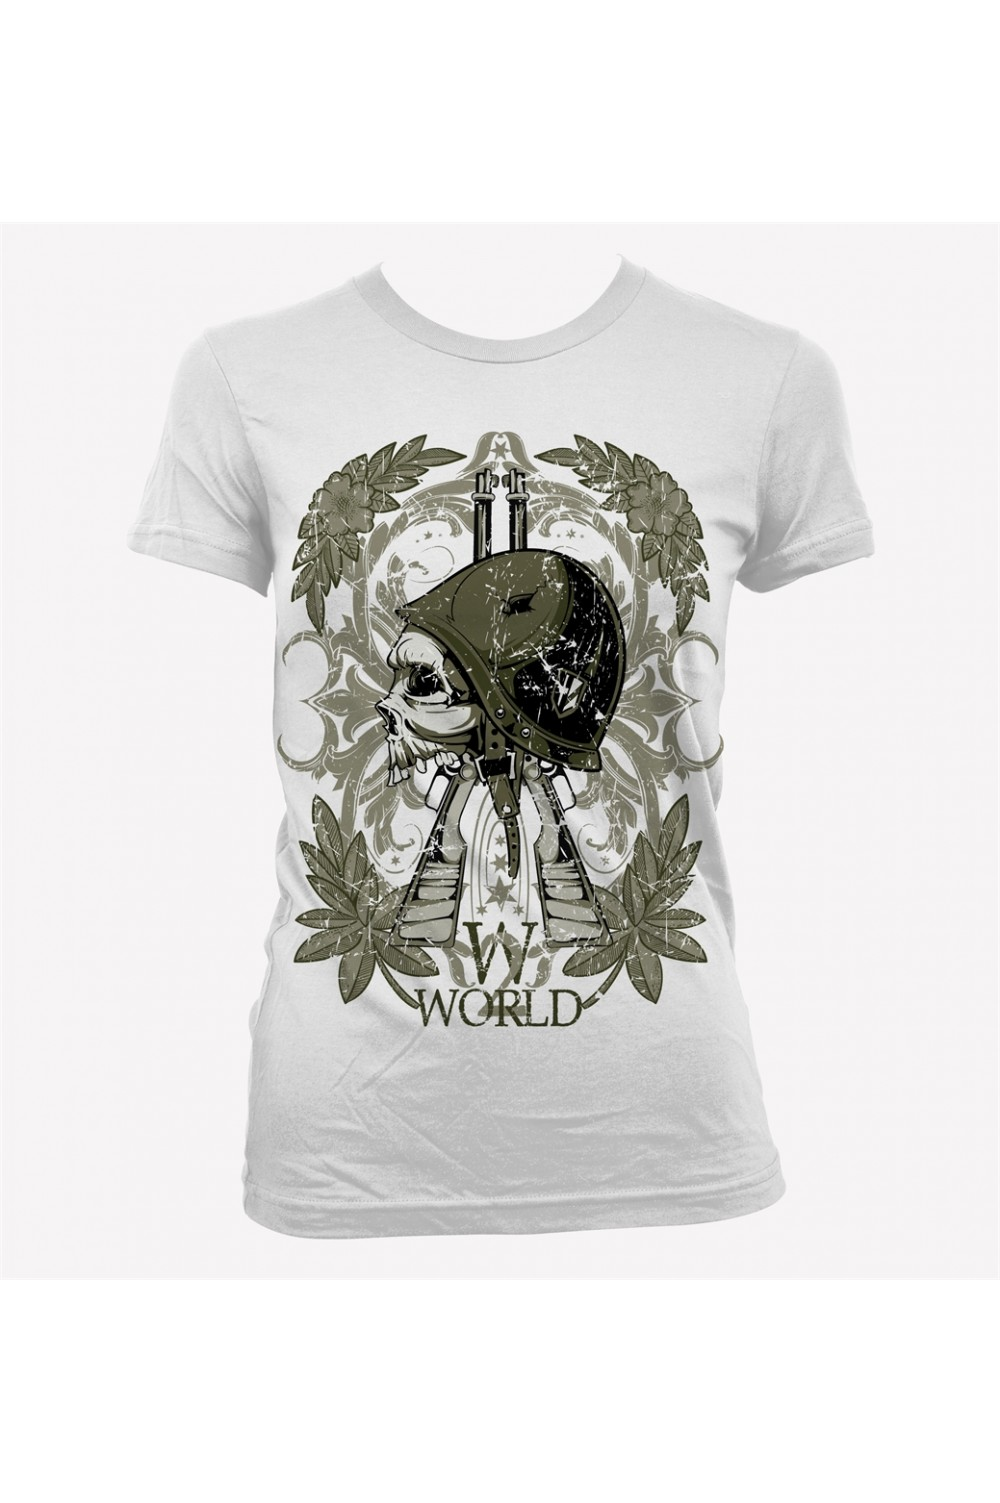 War Skull Women Printed T-shirt 4022